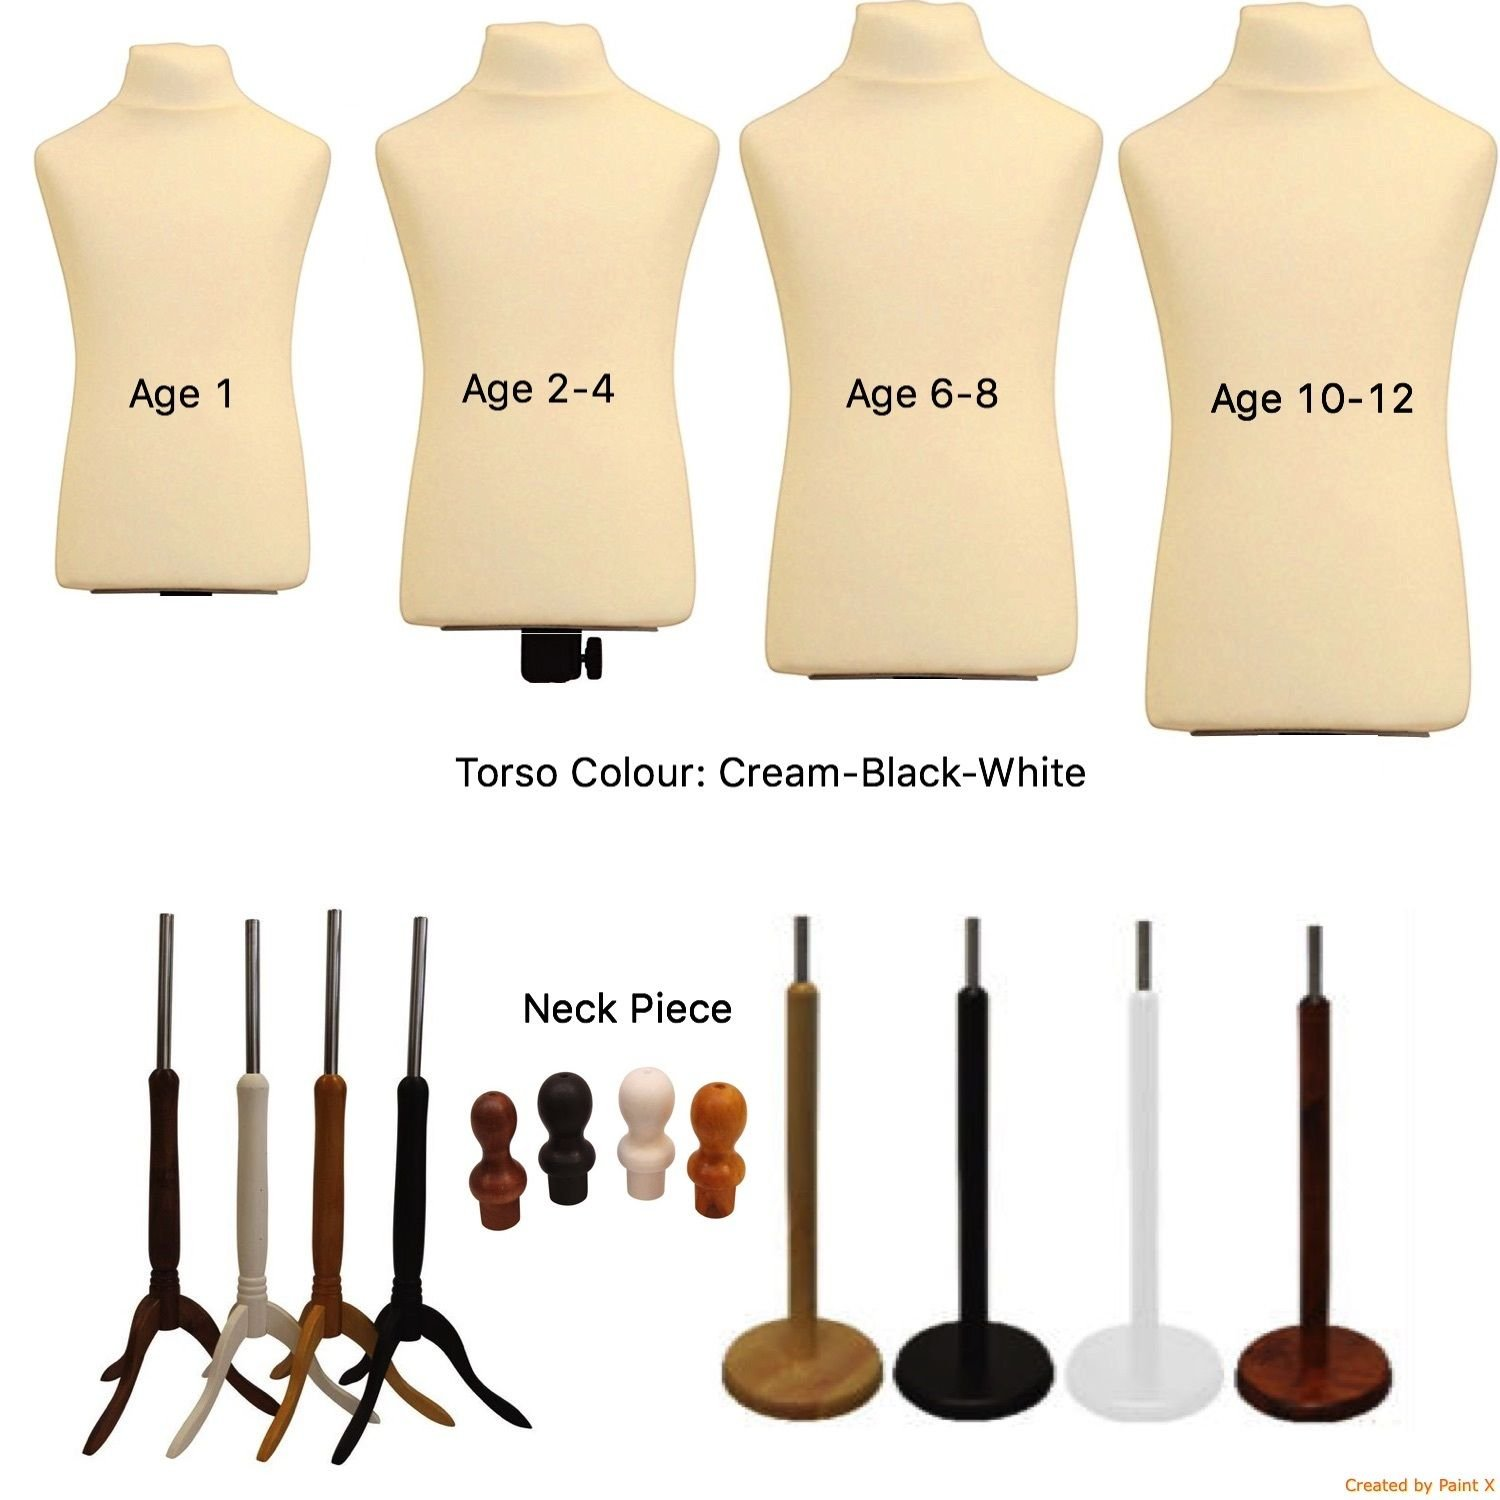 CHILDS AGE 2//4 Dressmaking Mannequin Tailors Bust Display Dummy Dressmakers